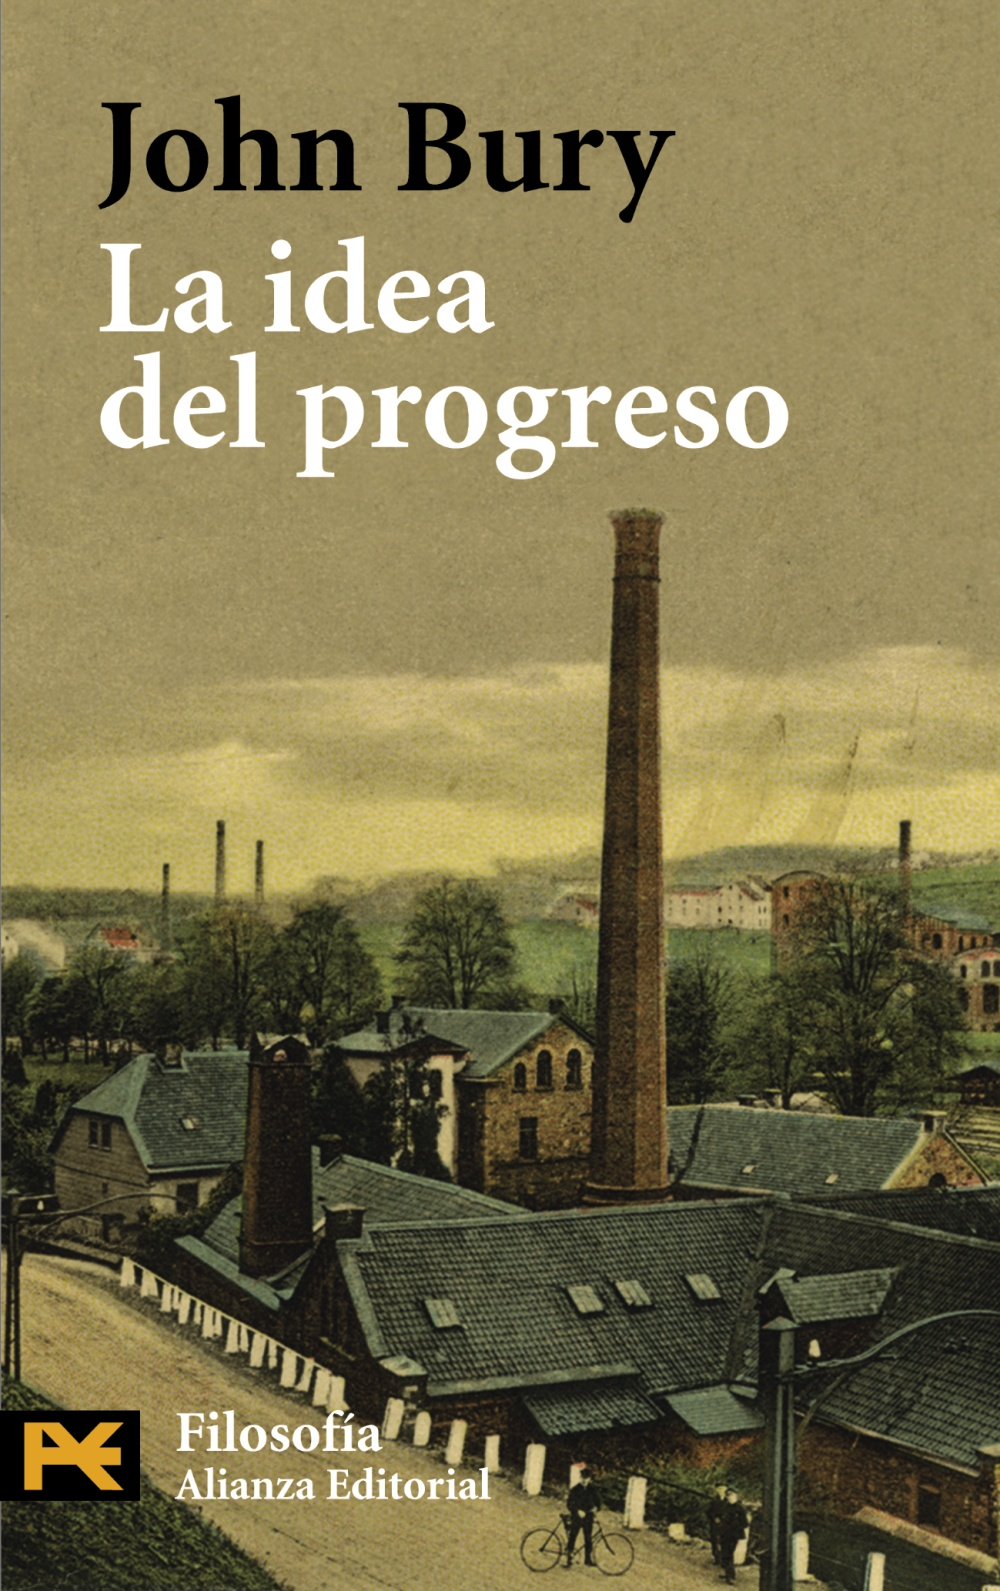 La idea del progreso - Alianza Editorial